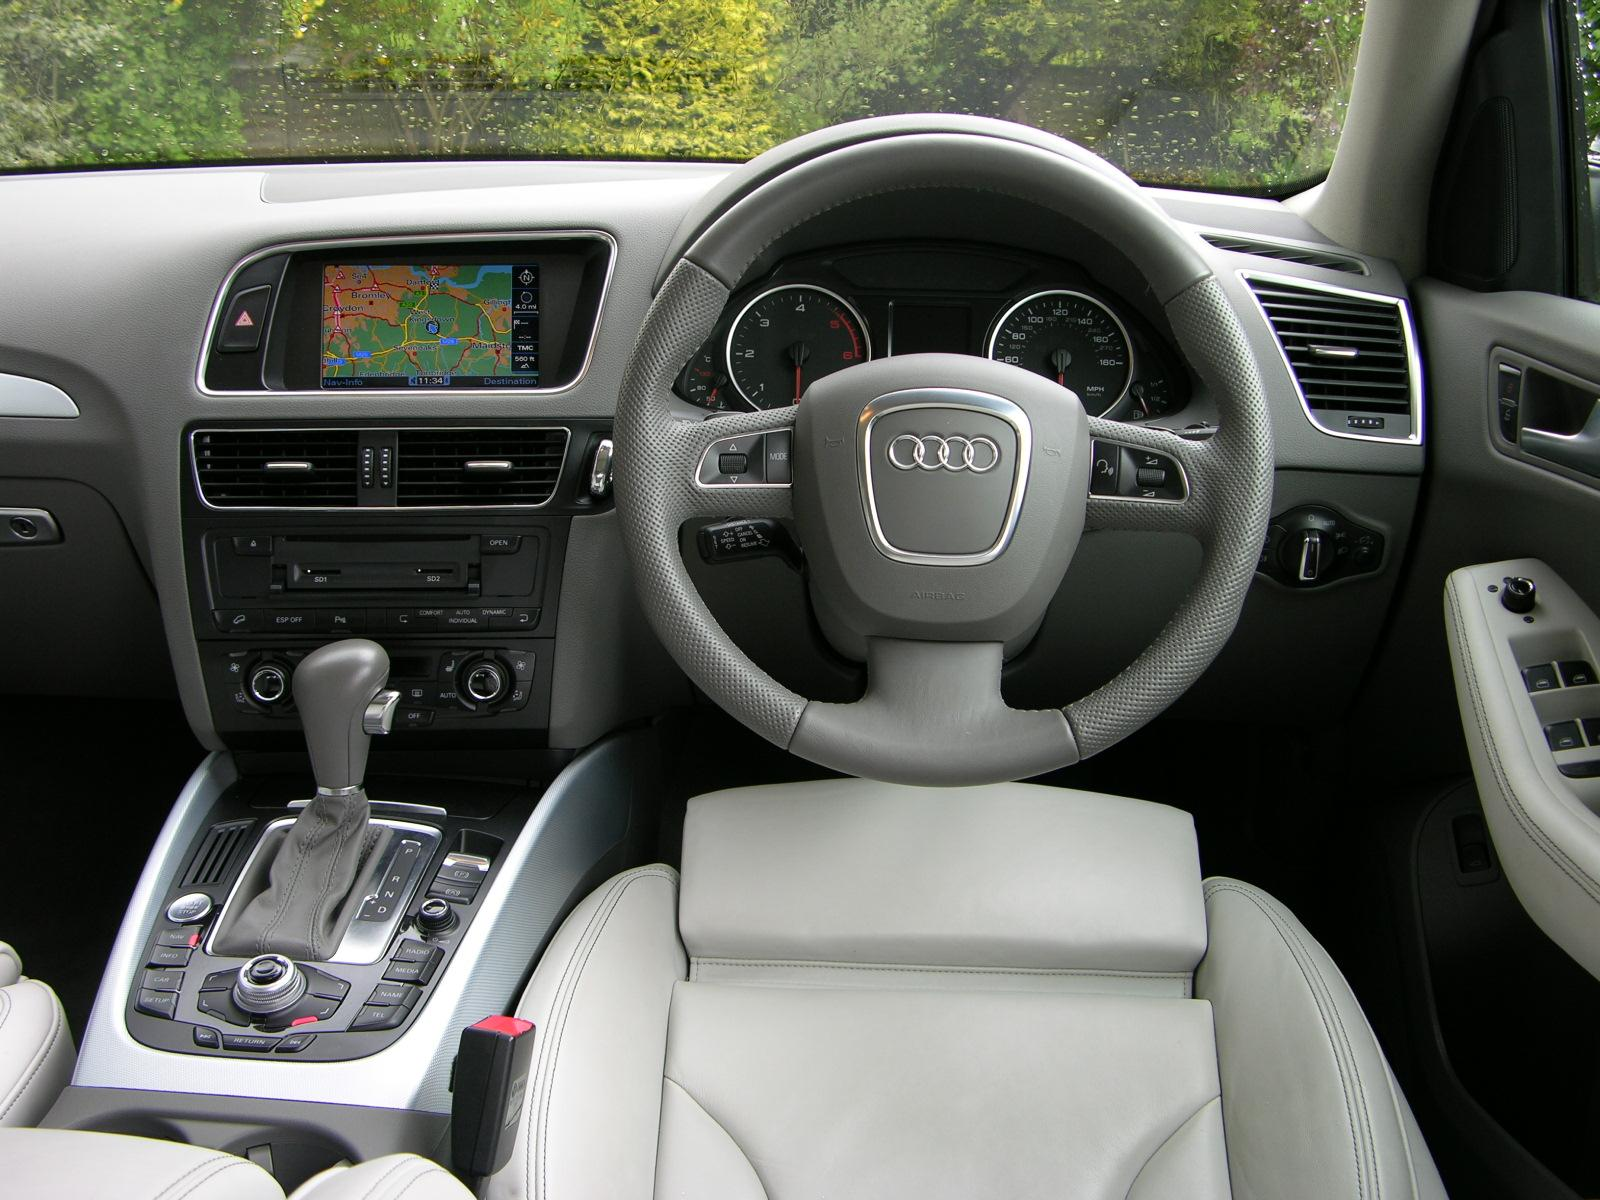 file 2009 audi q5 se tdi quattro flickr the car spy 12 jpg wikimedia commons. Black Bedroom Furniture Sets. Home Design Ideas